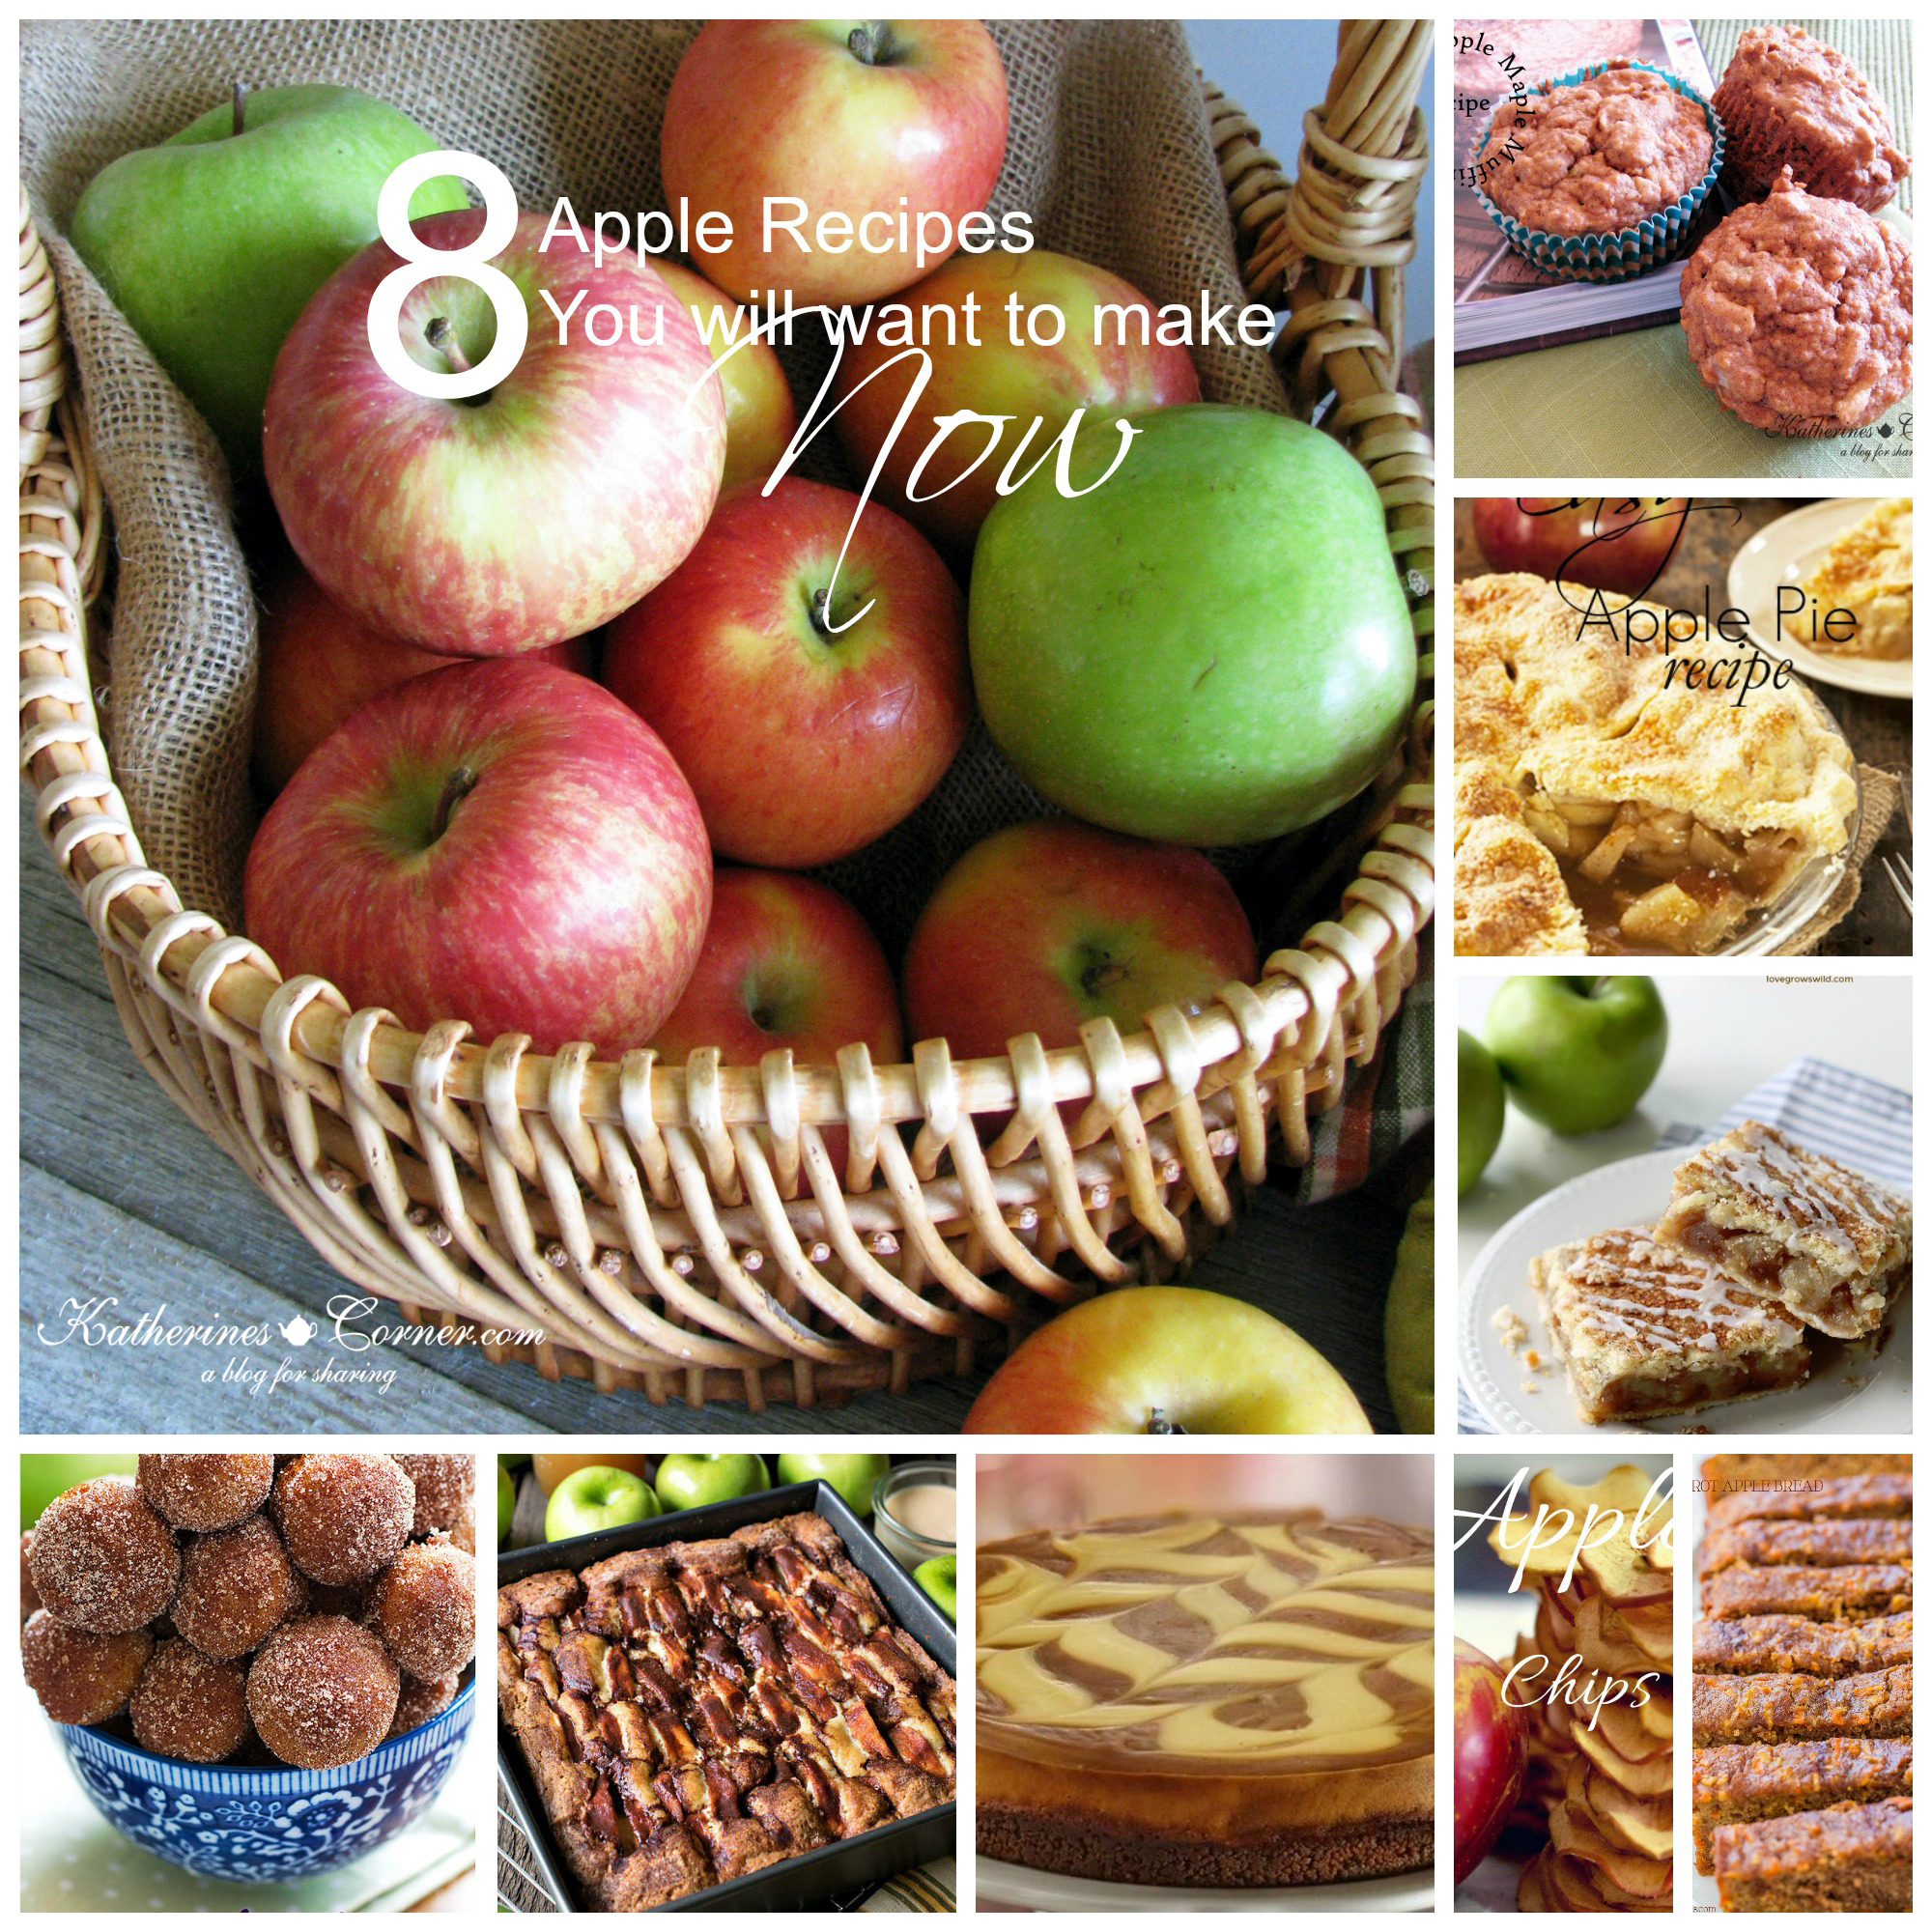 8 Apple Recipes You Will Want To Make Now